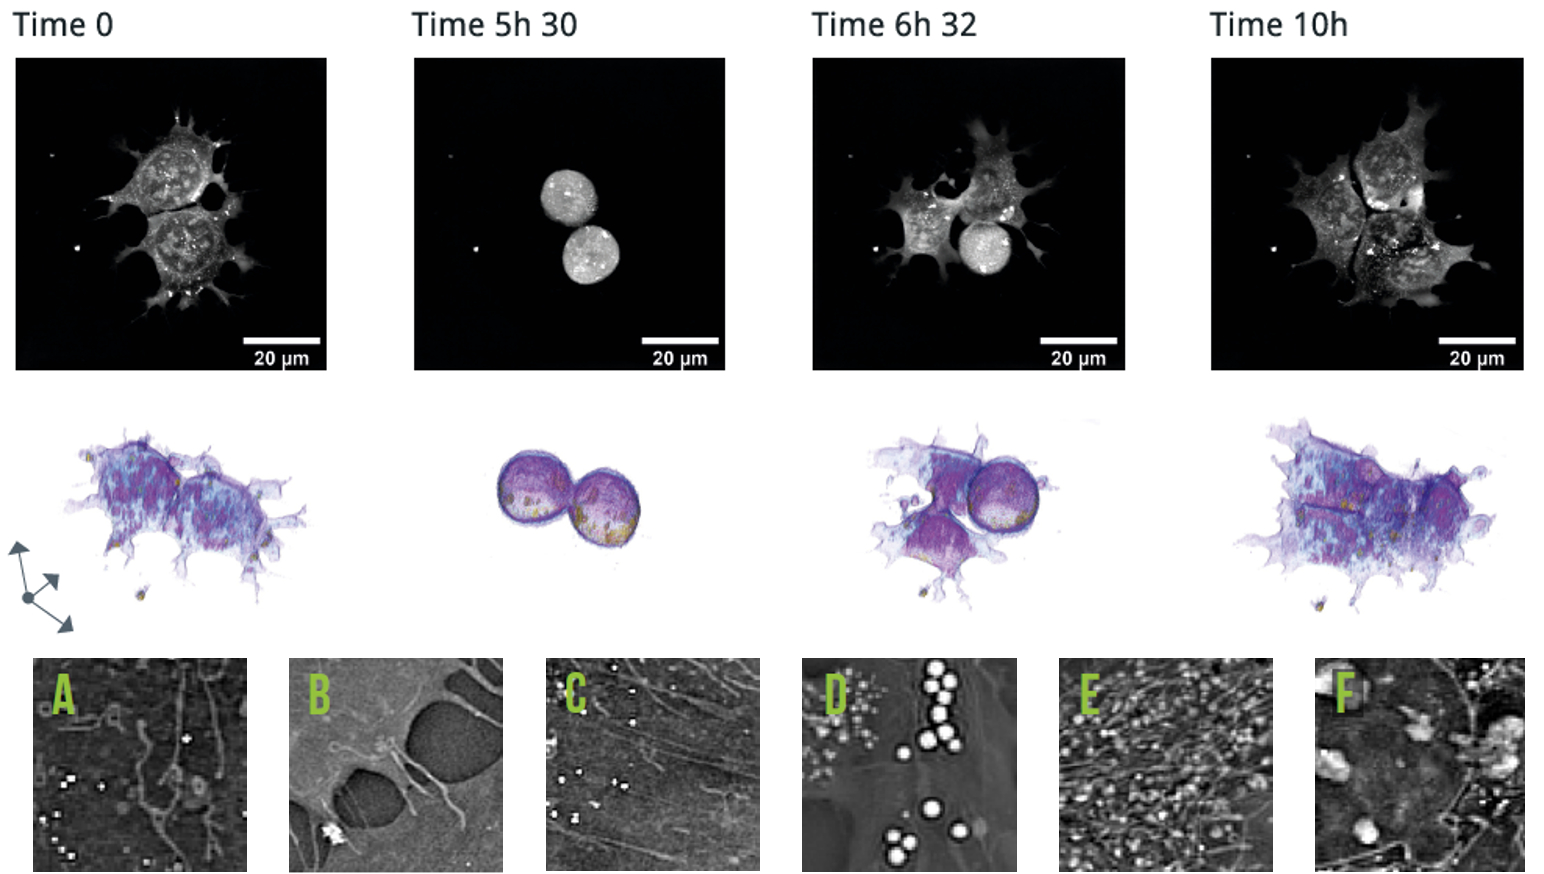 Stem Cells Time Lapse and cell organelles a-f.png